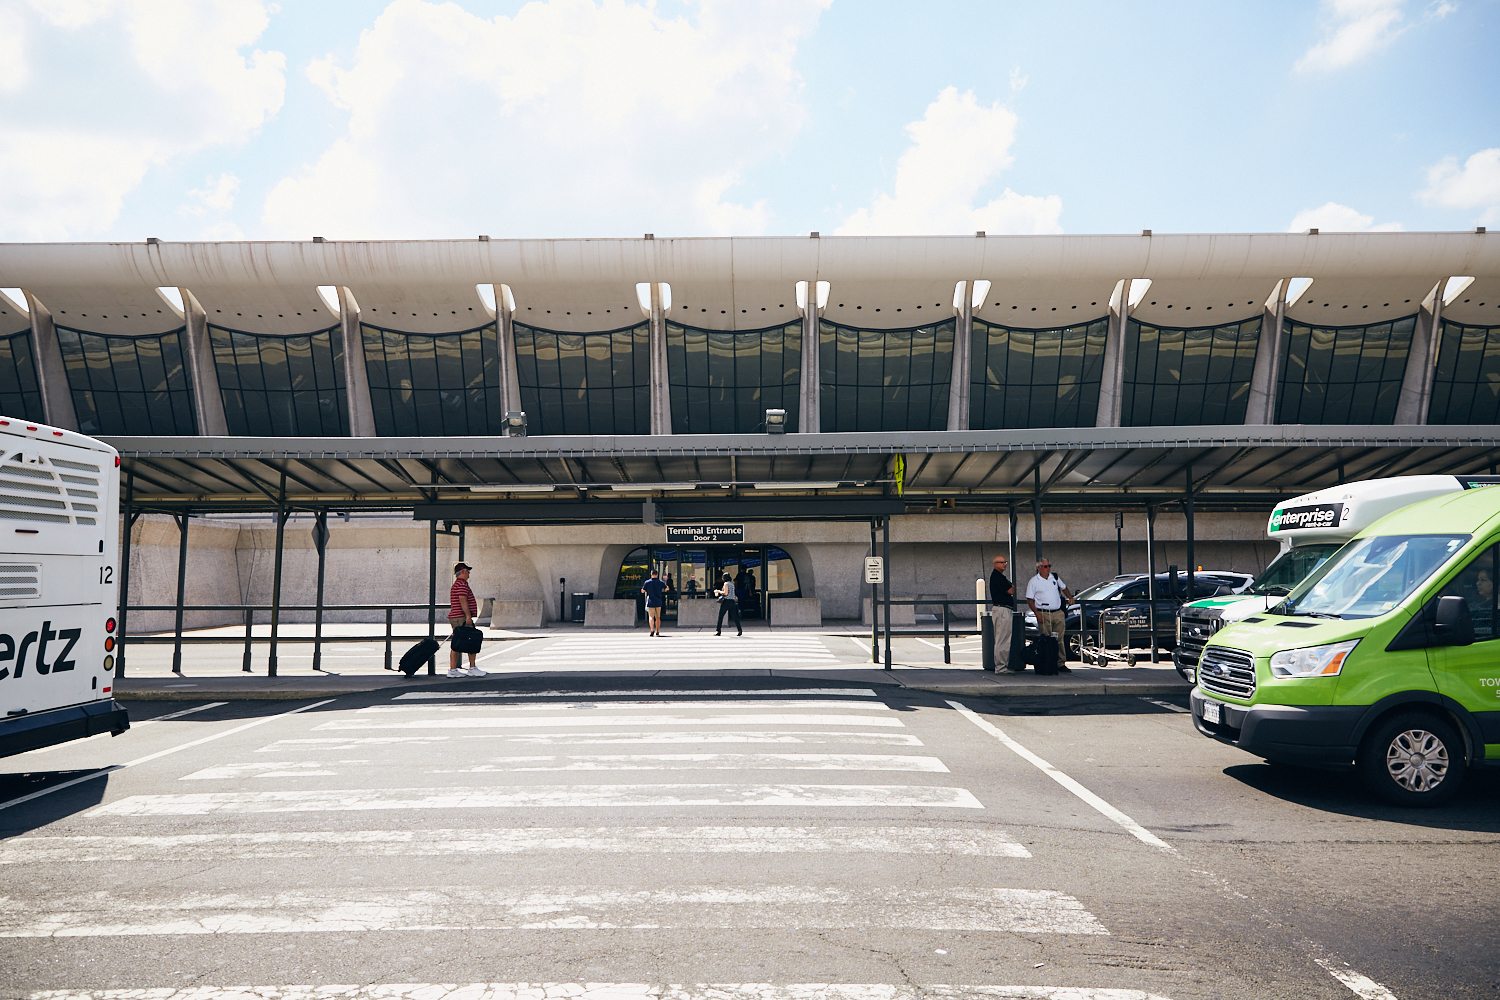 Terminal entrance Door 2 from daily parking